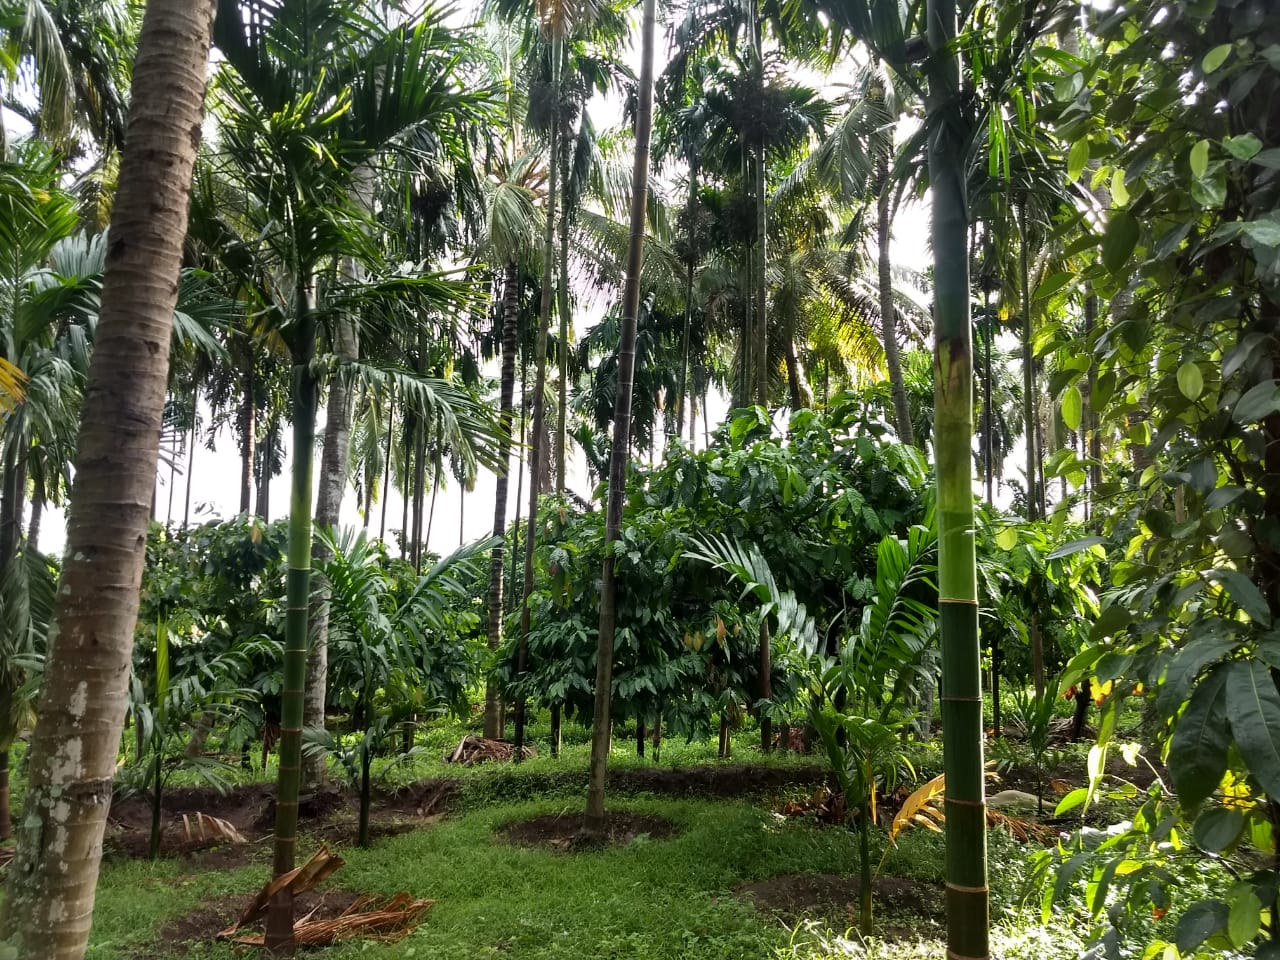 18 Acre cheapest agricultural land for sale in